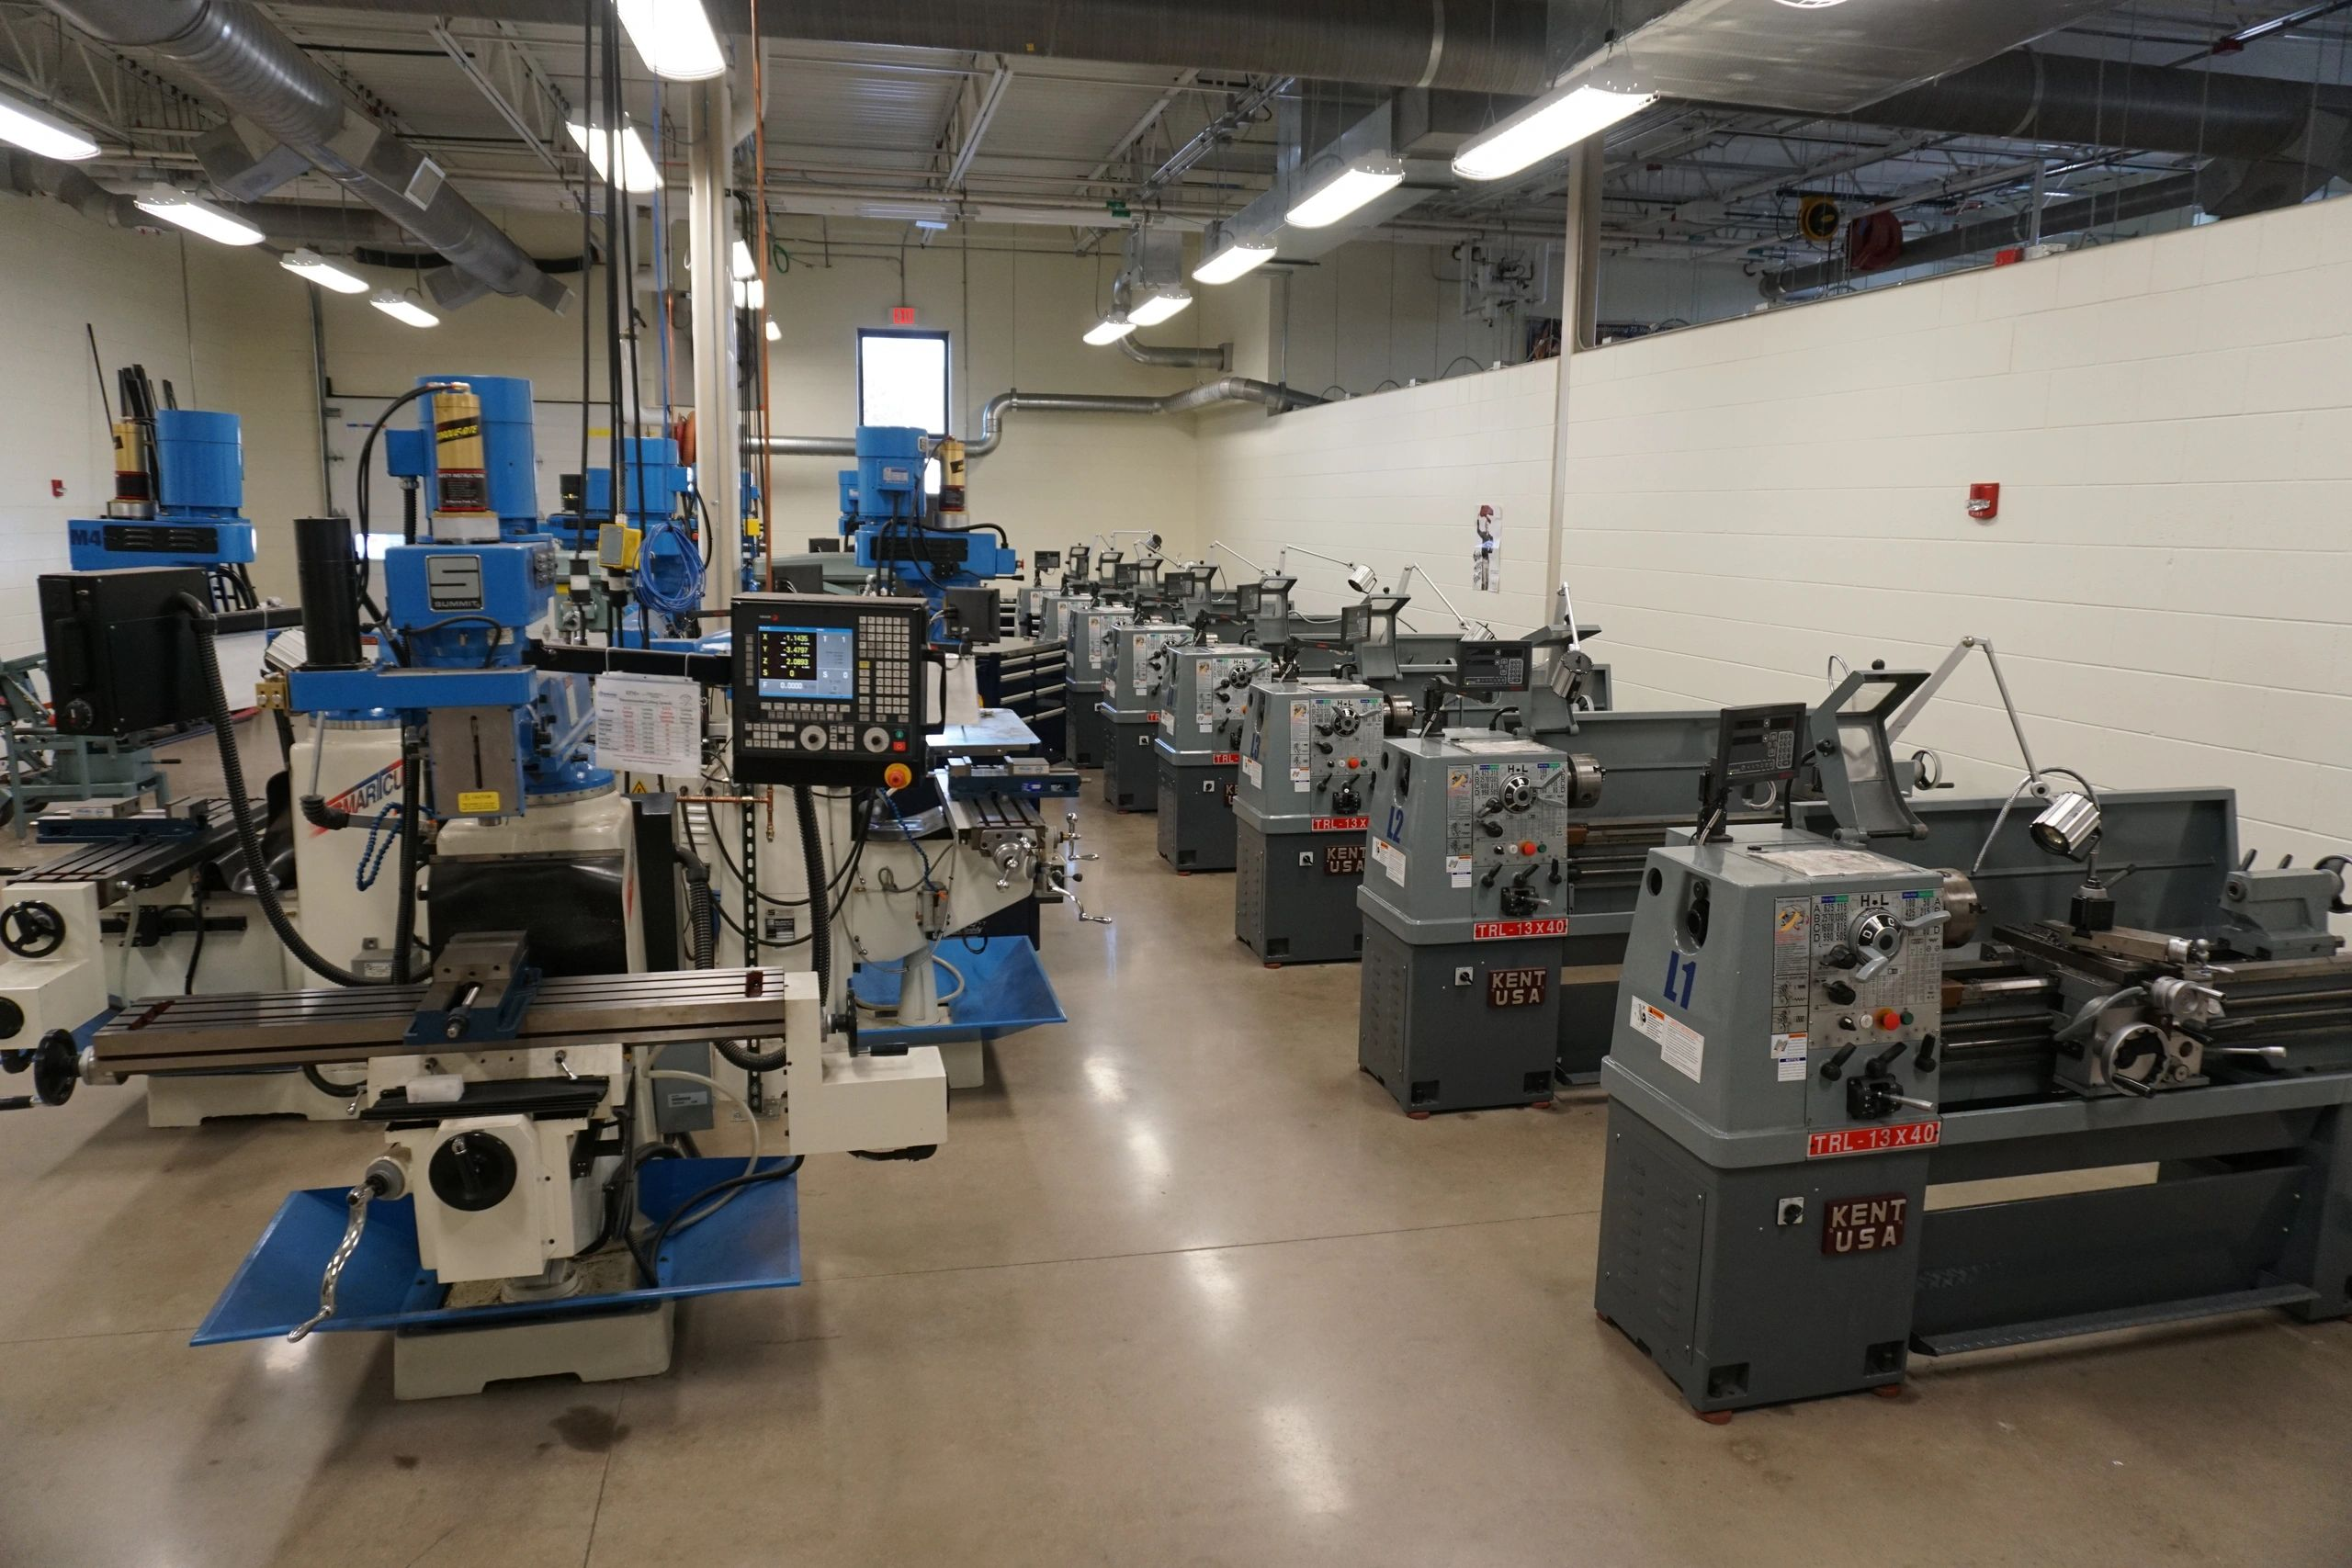 OUR MANUFACTURERS | Machine Tool & Equipment, Inc